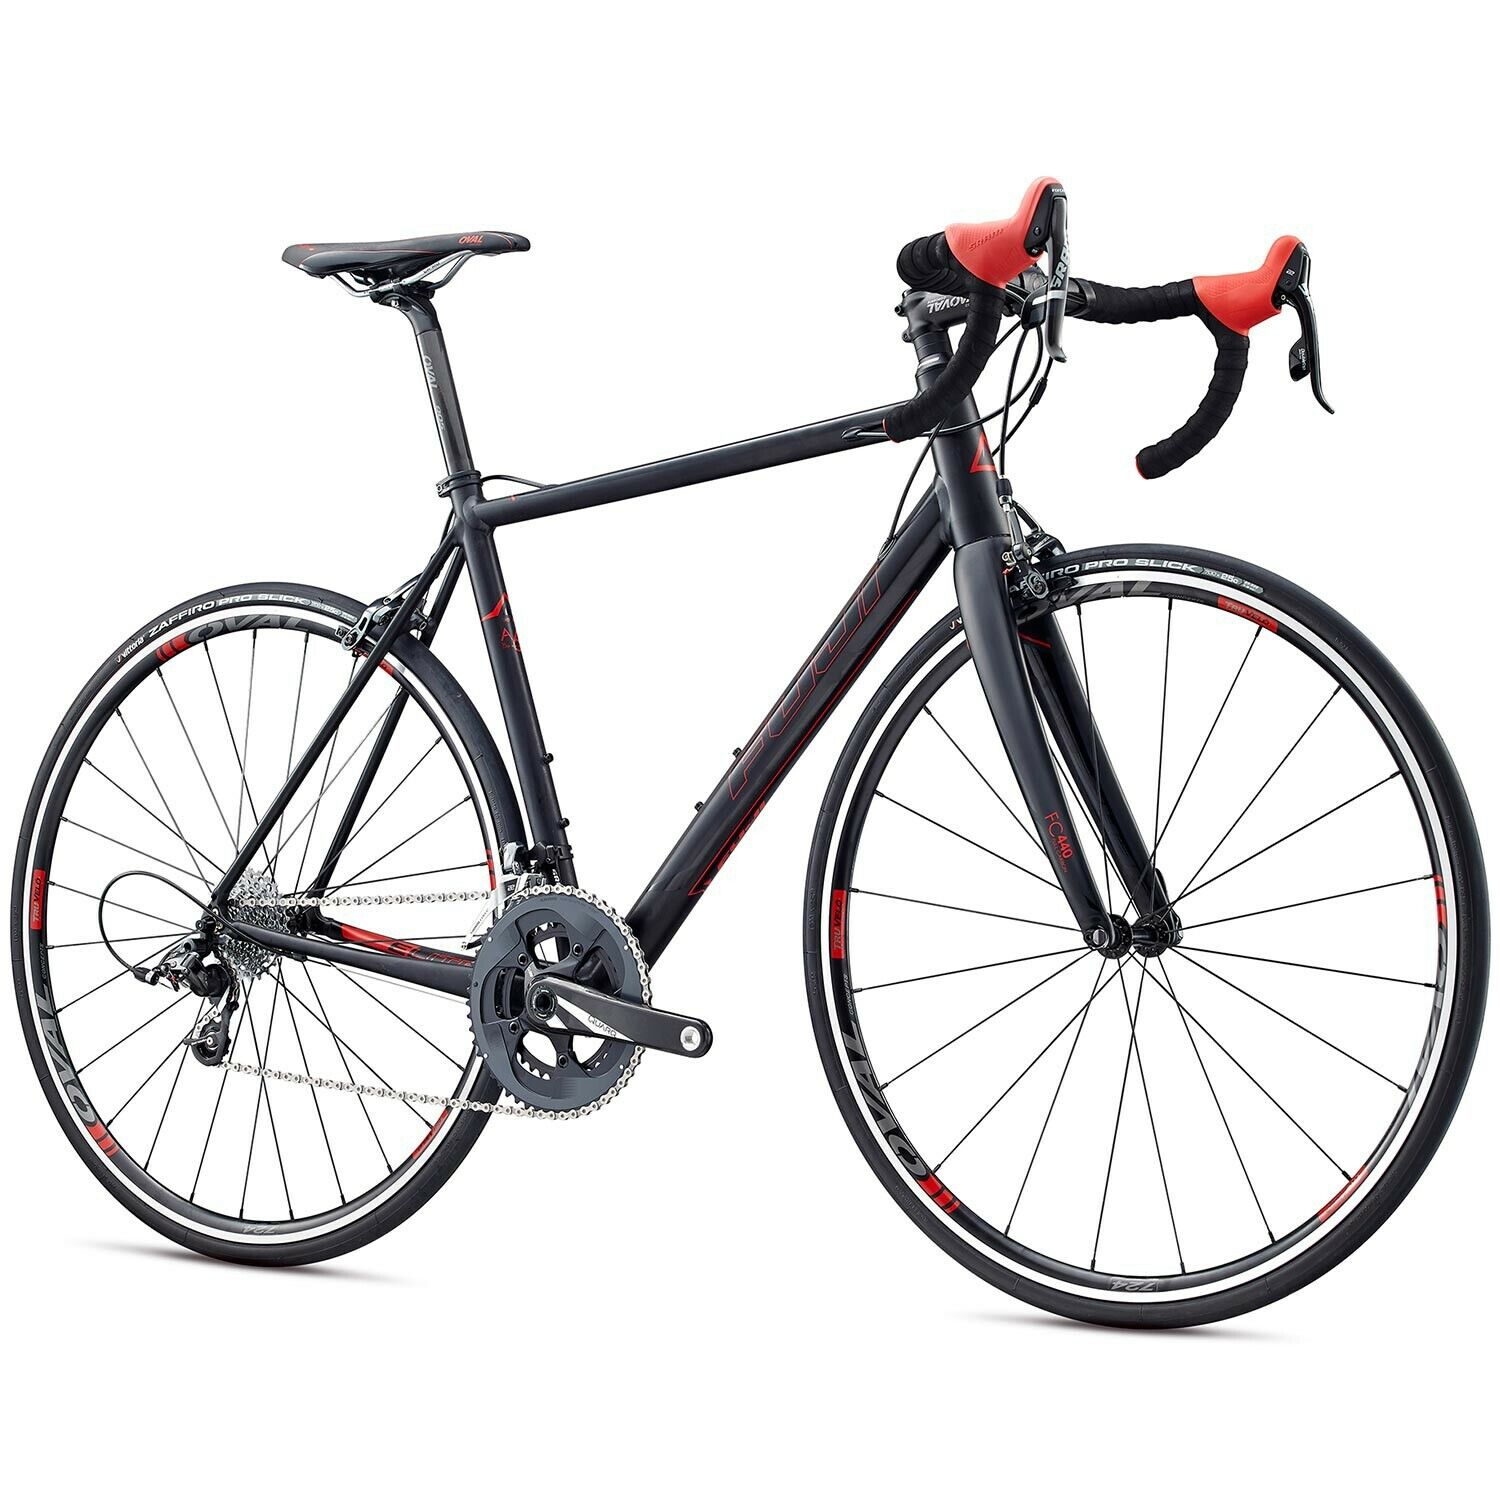 Rennrad 700c Fuji Roubaix Elite Road Bike